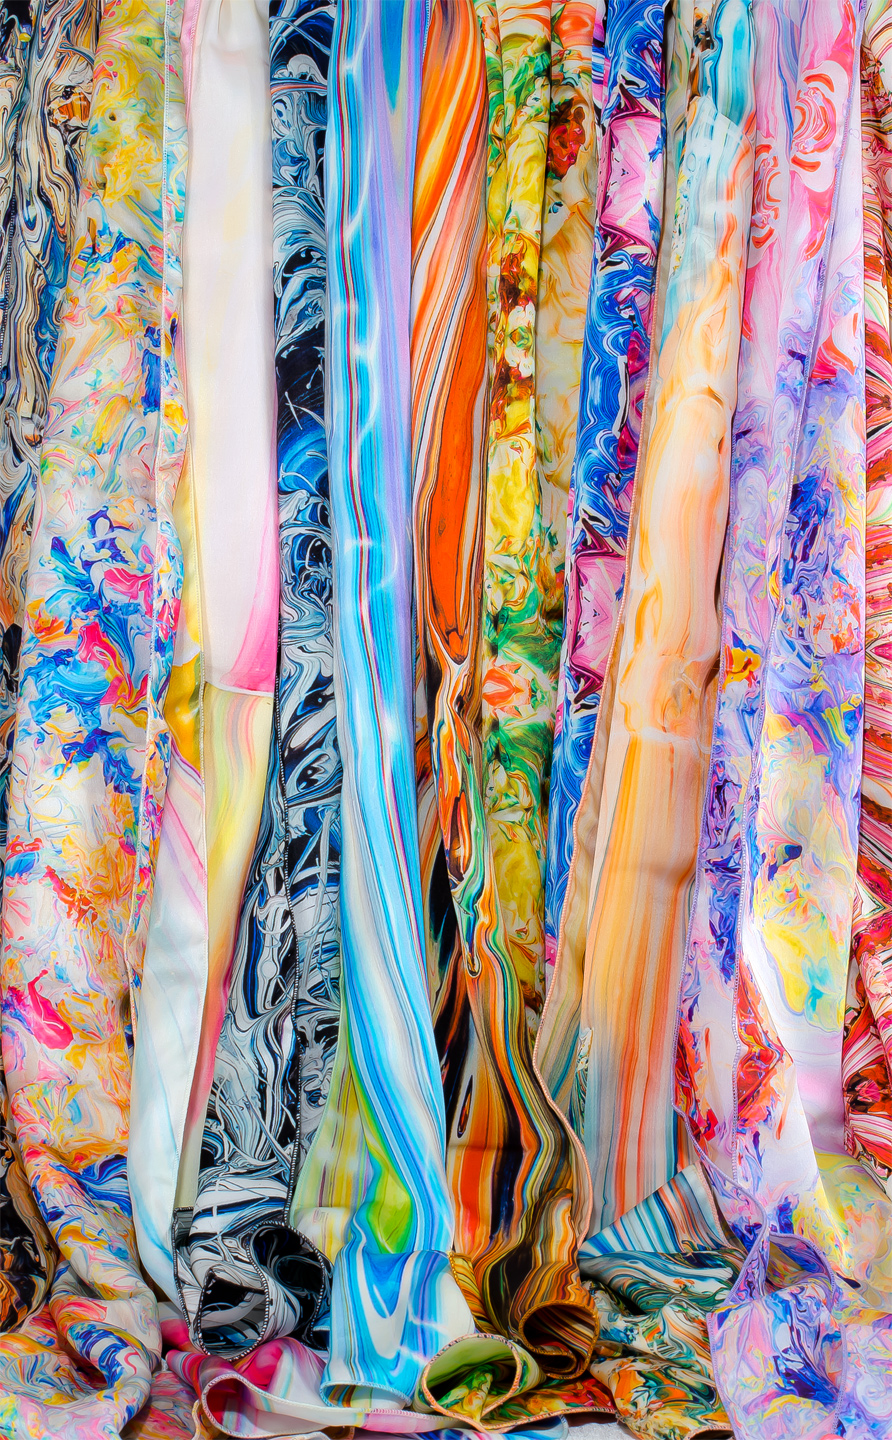 curtains acrylic texture design wallpaper art pattern colorful background